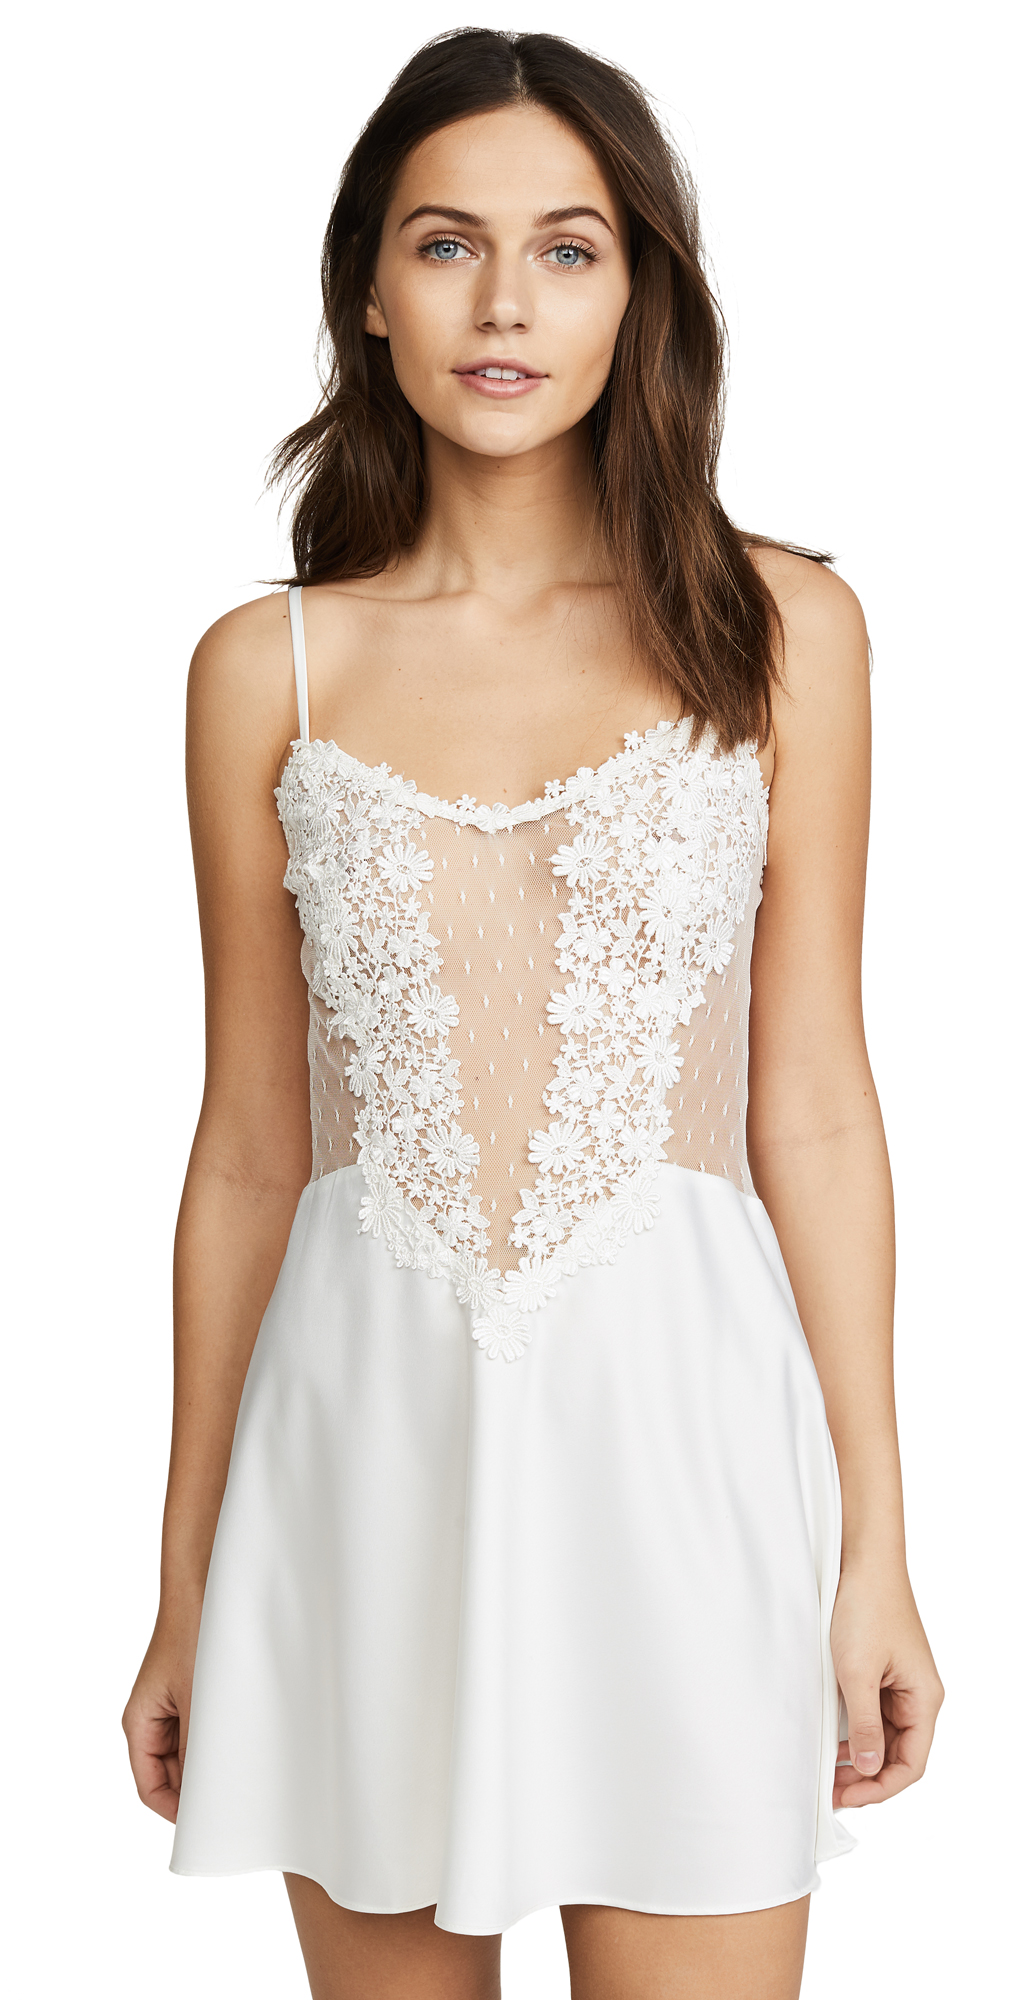 Showstopper Chemise With Lace